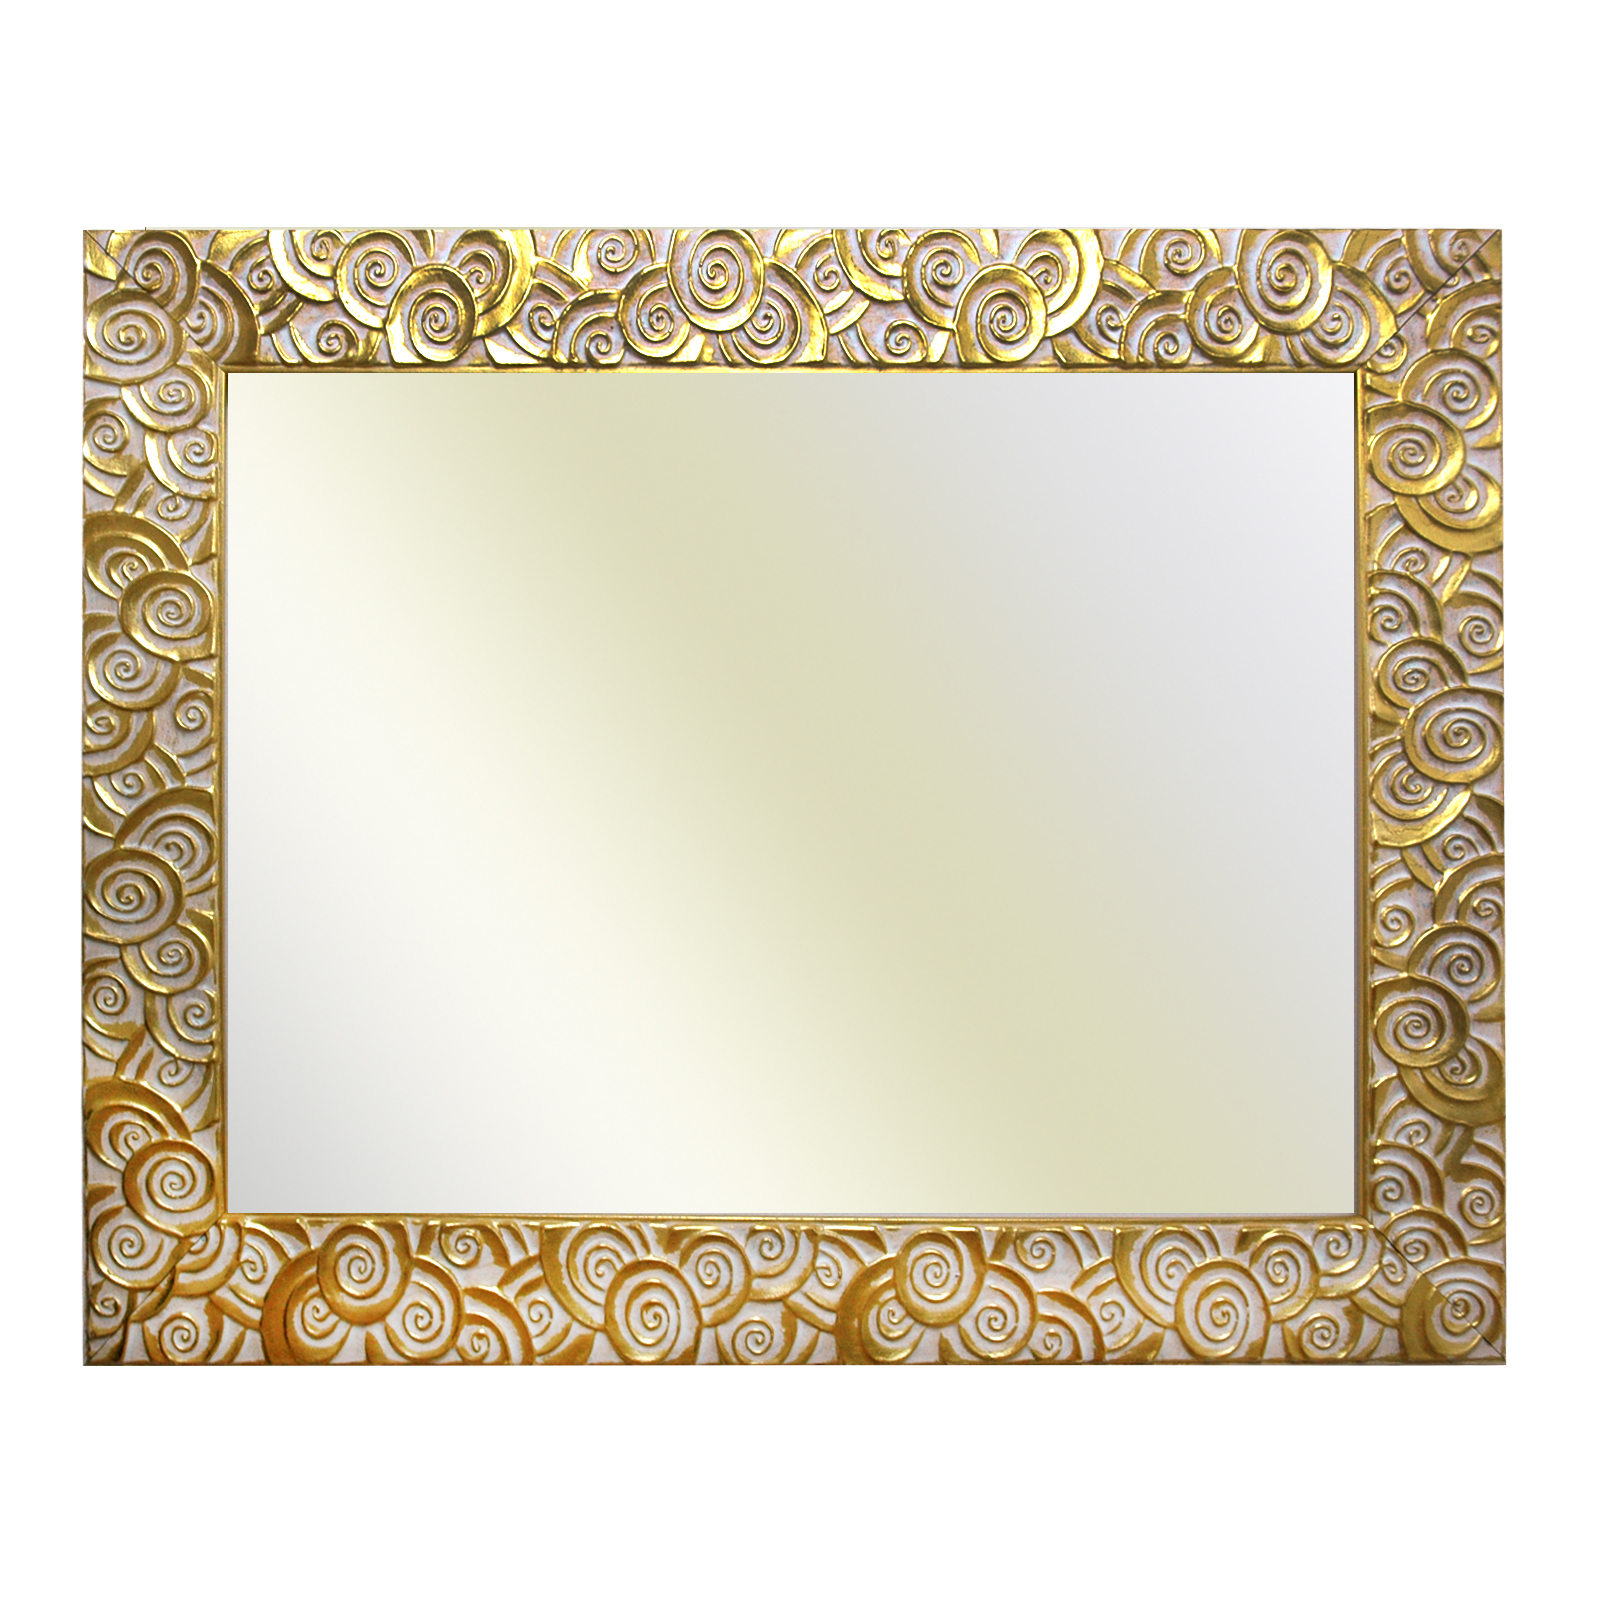 Baroque frame gold fine decorated 585 Oro, Various Variations | eBay